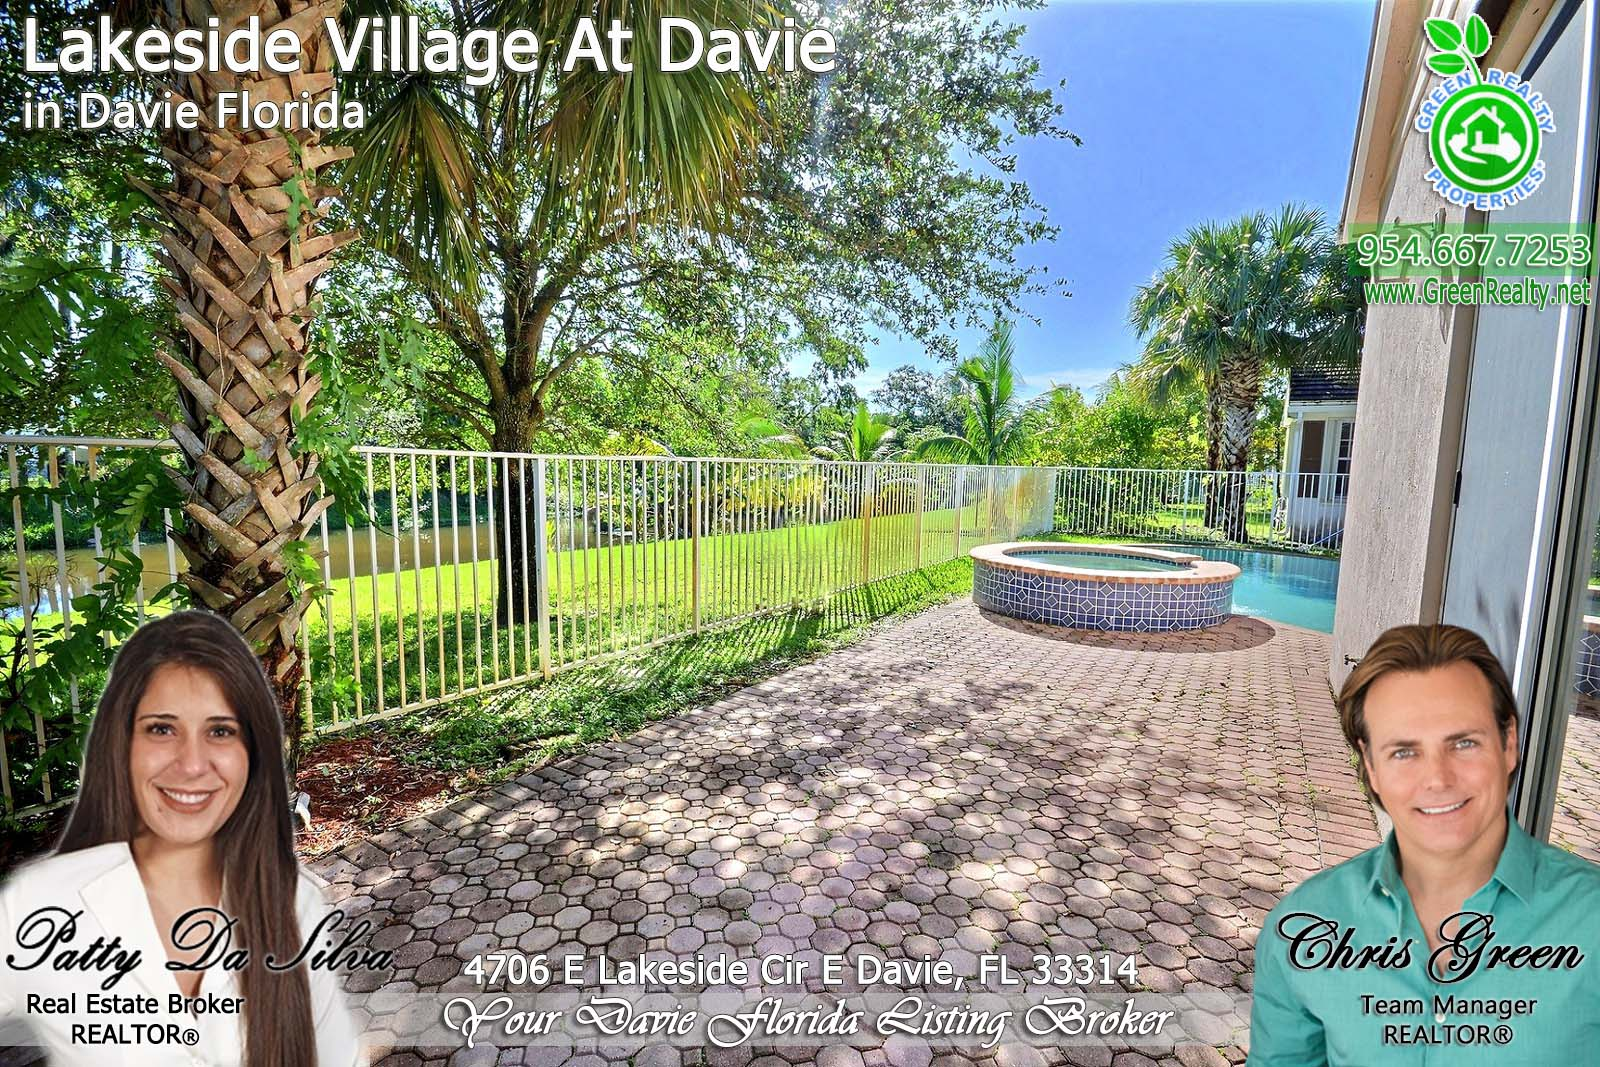 36 Real Estate Brokers in Davie FL